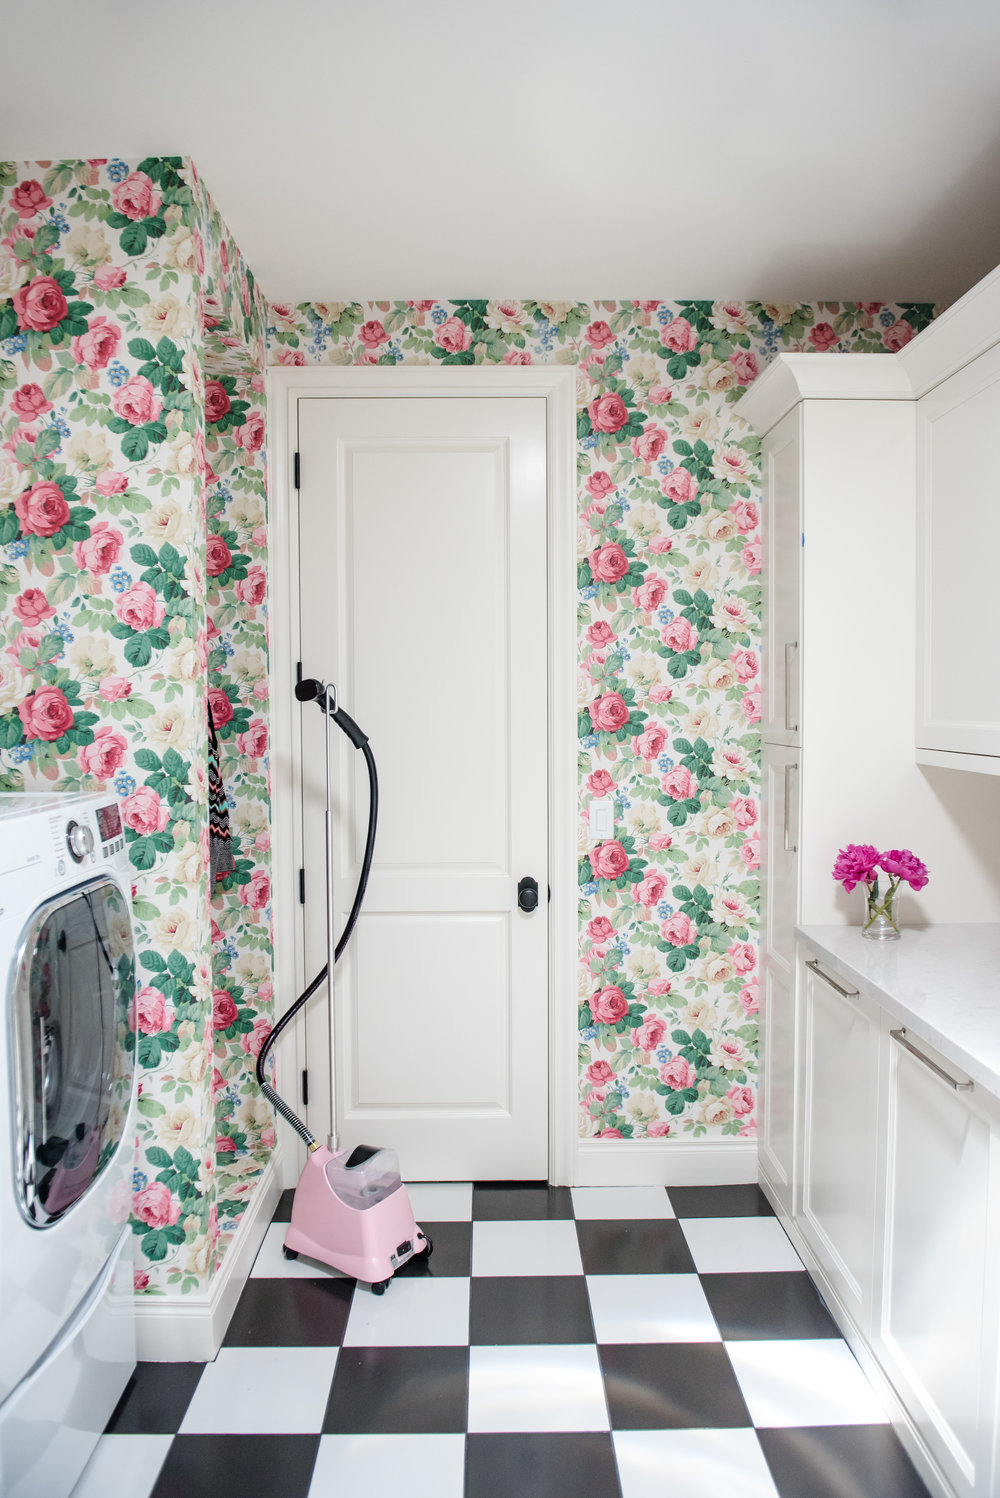 43+Laundry+Checkerboard+Floral+BlackandWhite+Feminine+Wallpaper.jpg